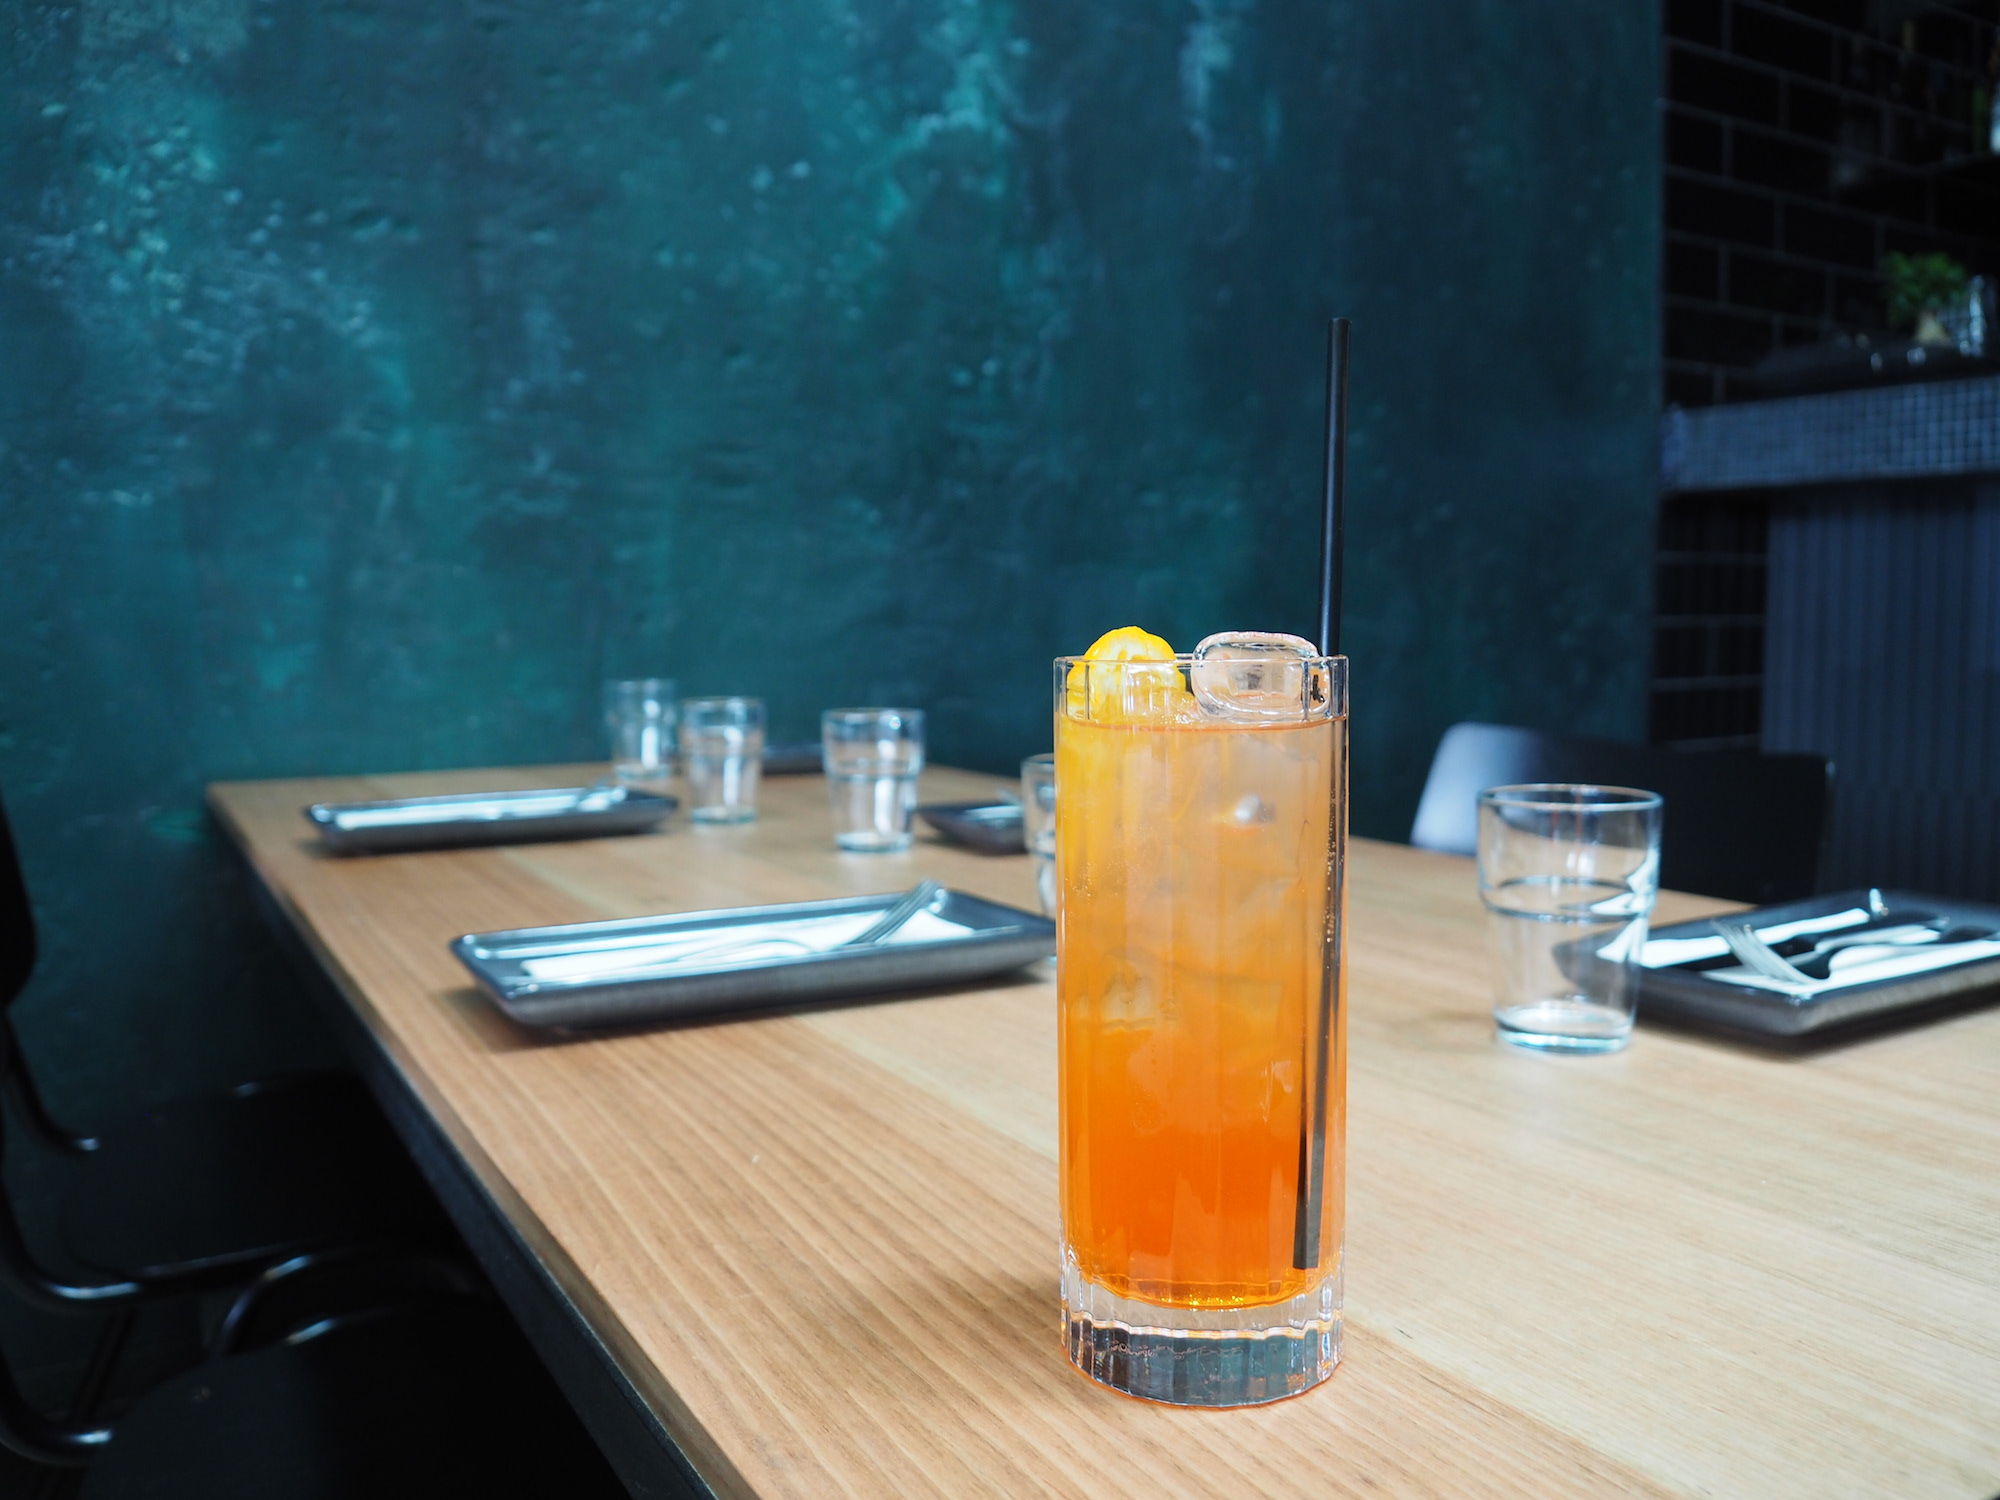 aperol, lillet blanc and grapefruit soda